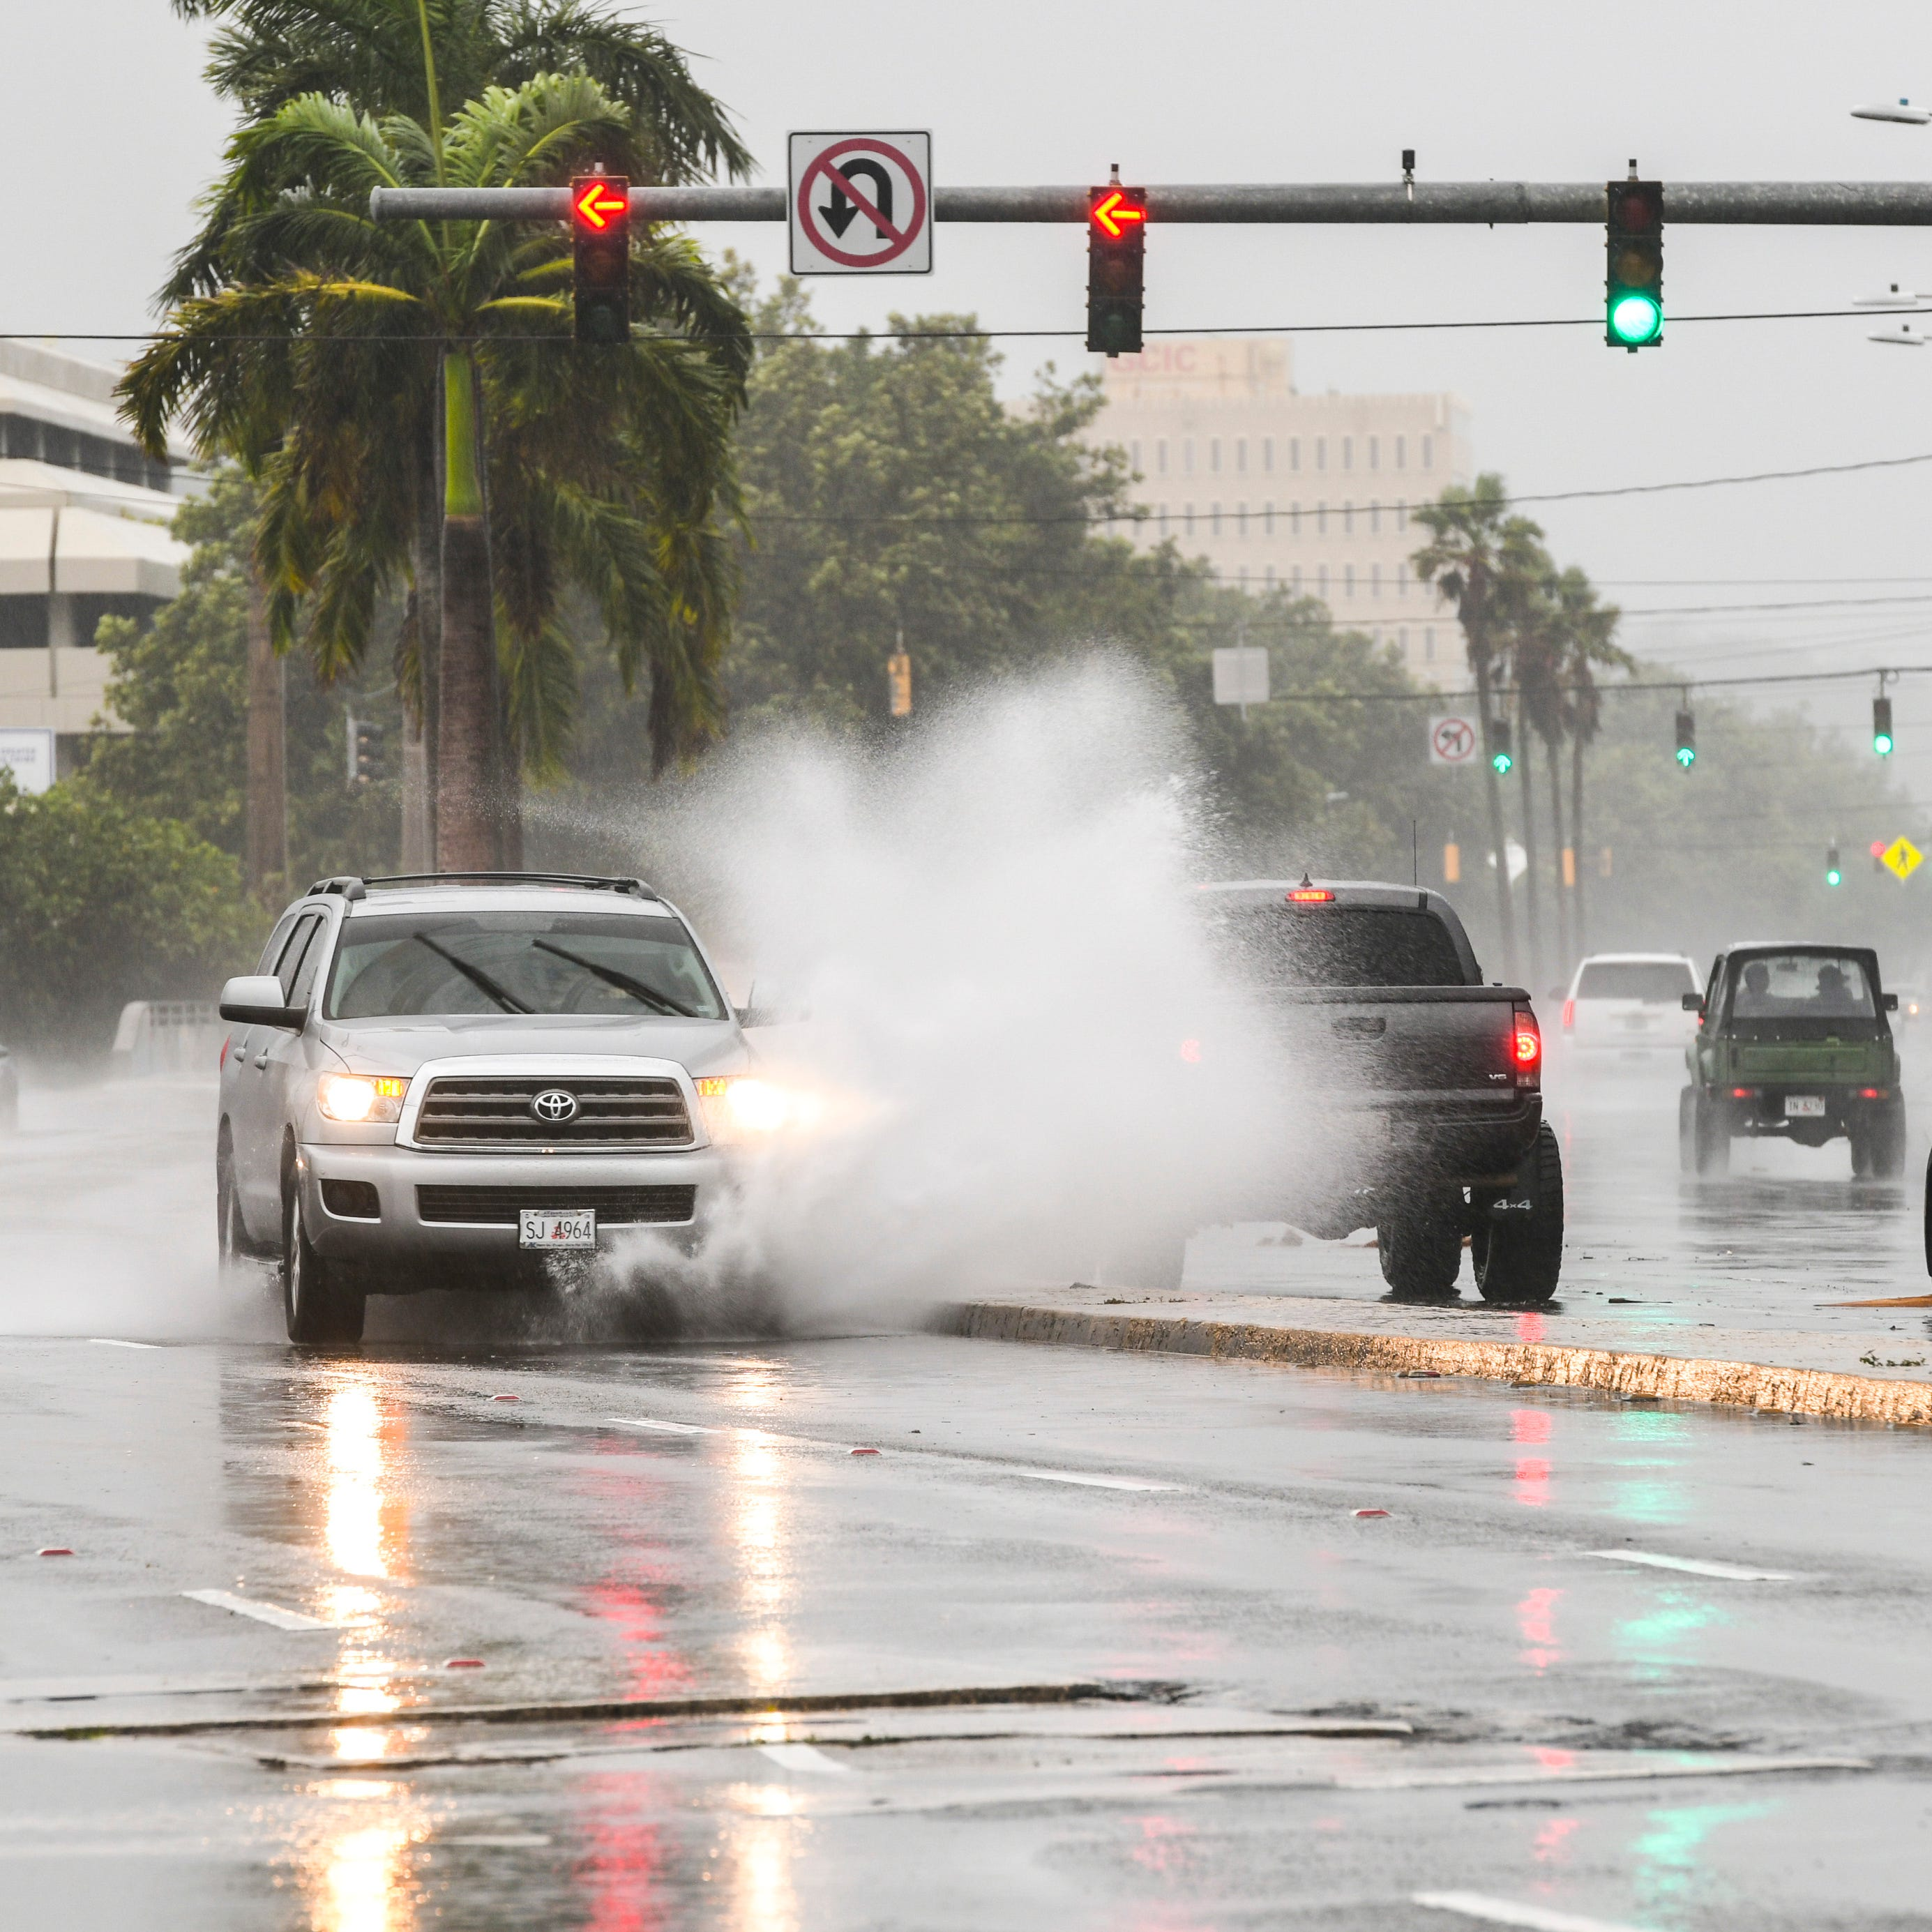 Expect thunderstorms, heavy rain through early evening, NWS Guam office says